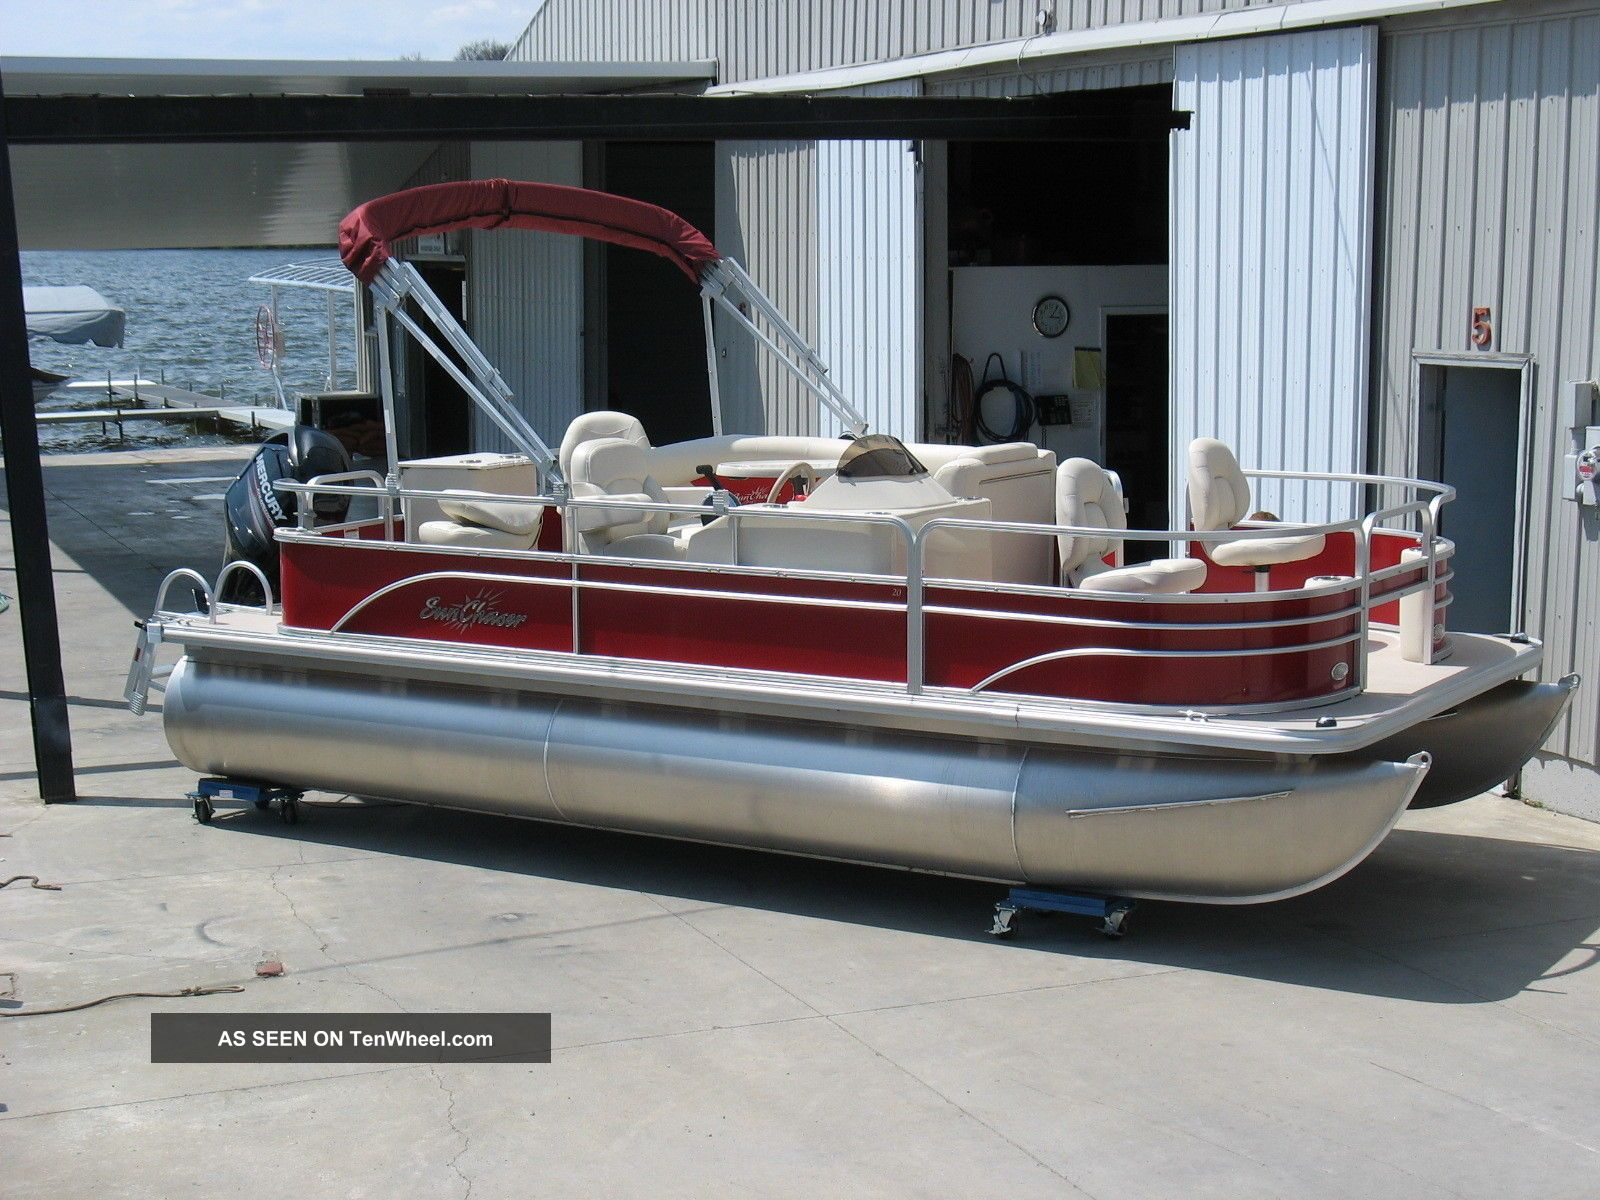 2014 sunchaser by starcraft classic fish 8520 4 pt for Fishing deck boats